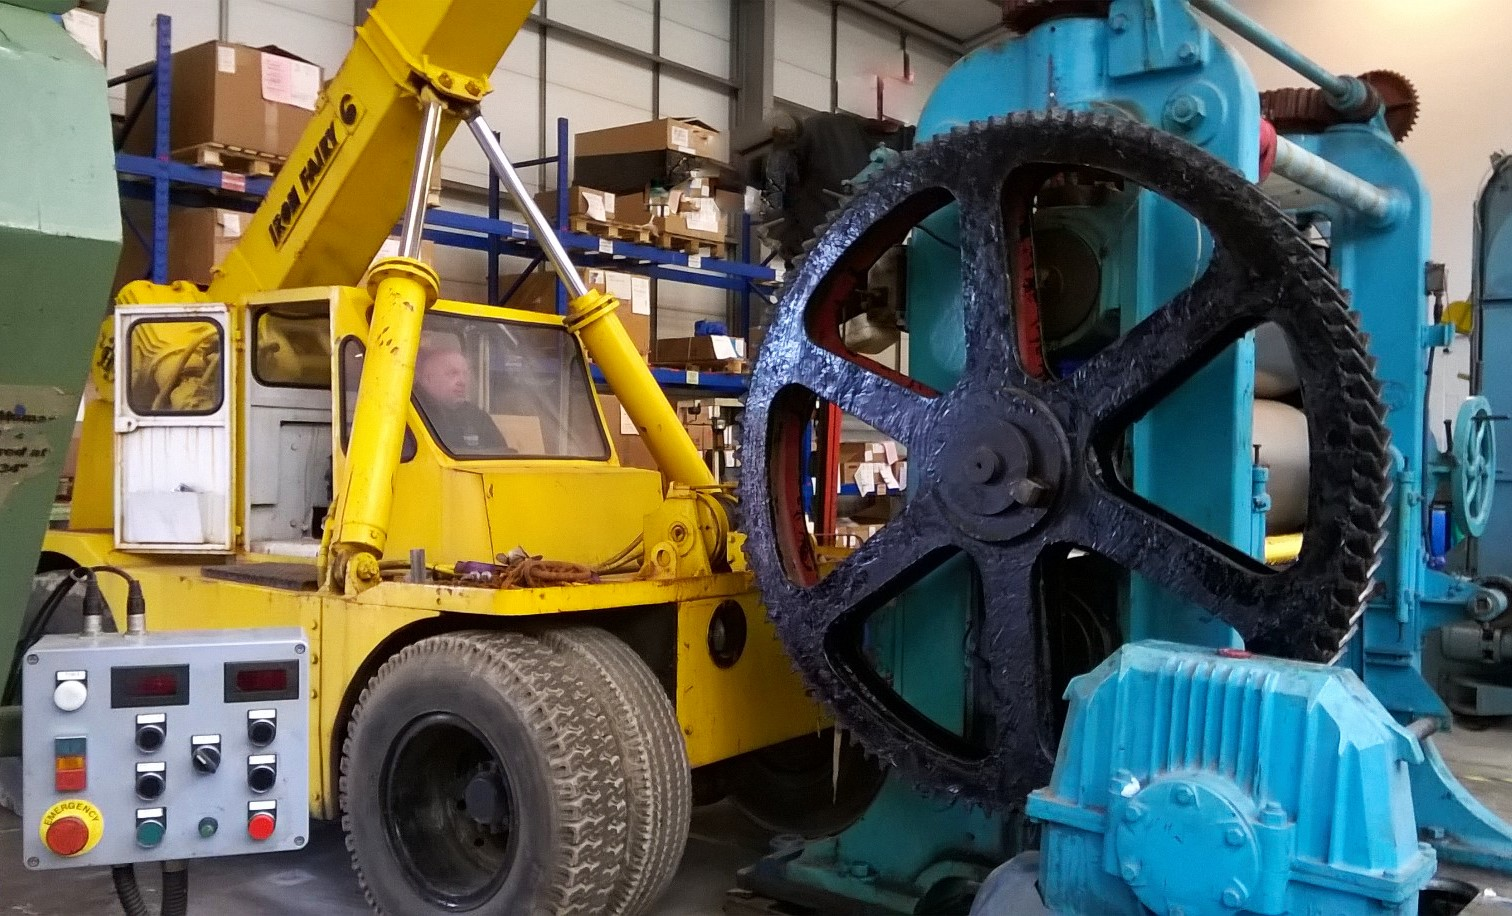 Industrial Machinery Movers - Machinery Moving & Plant Decommissioning